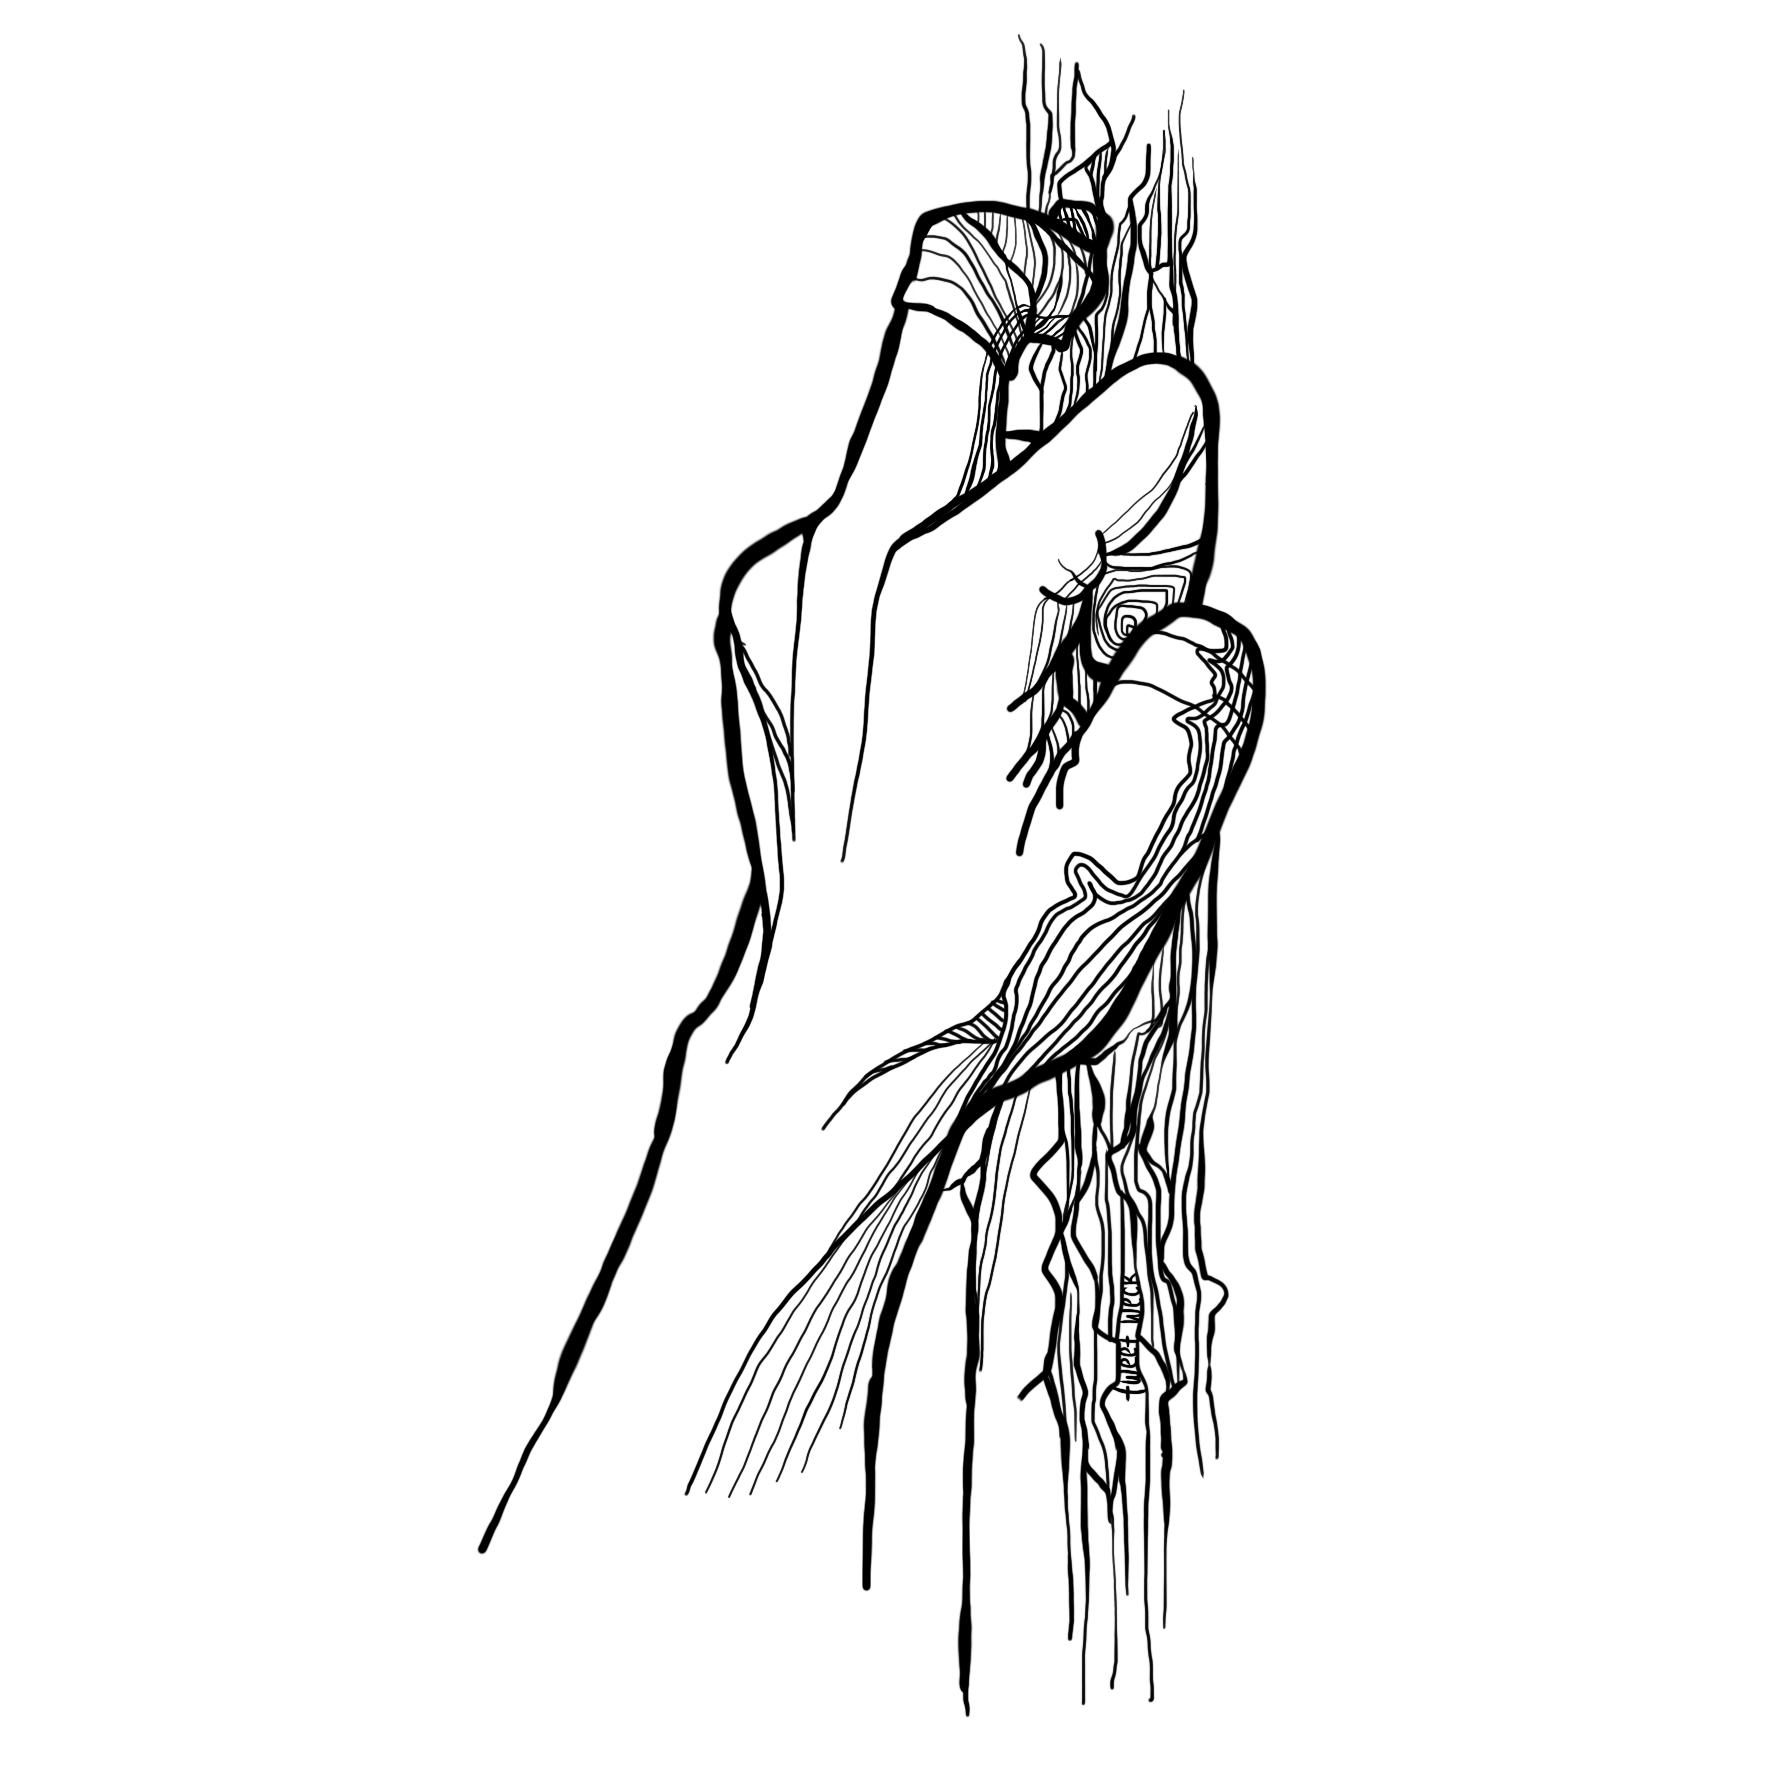 Pen Illstration - Finger Hold (Almost There)